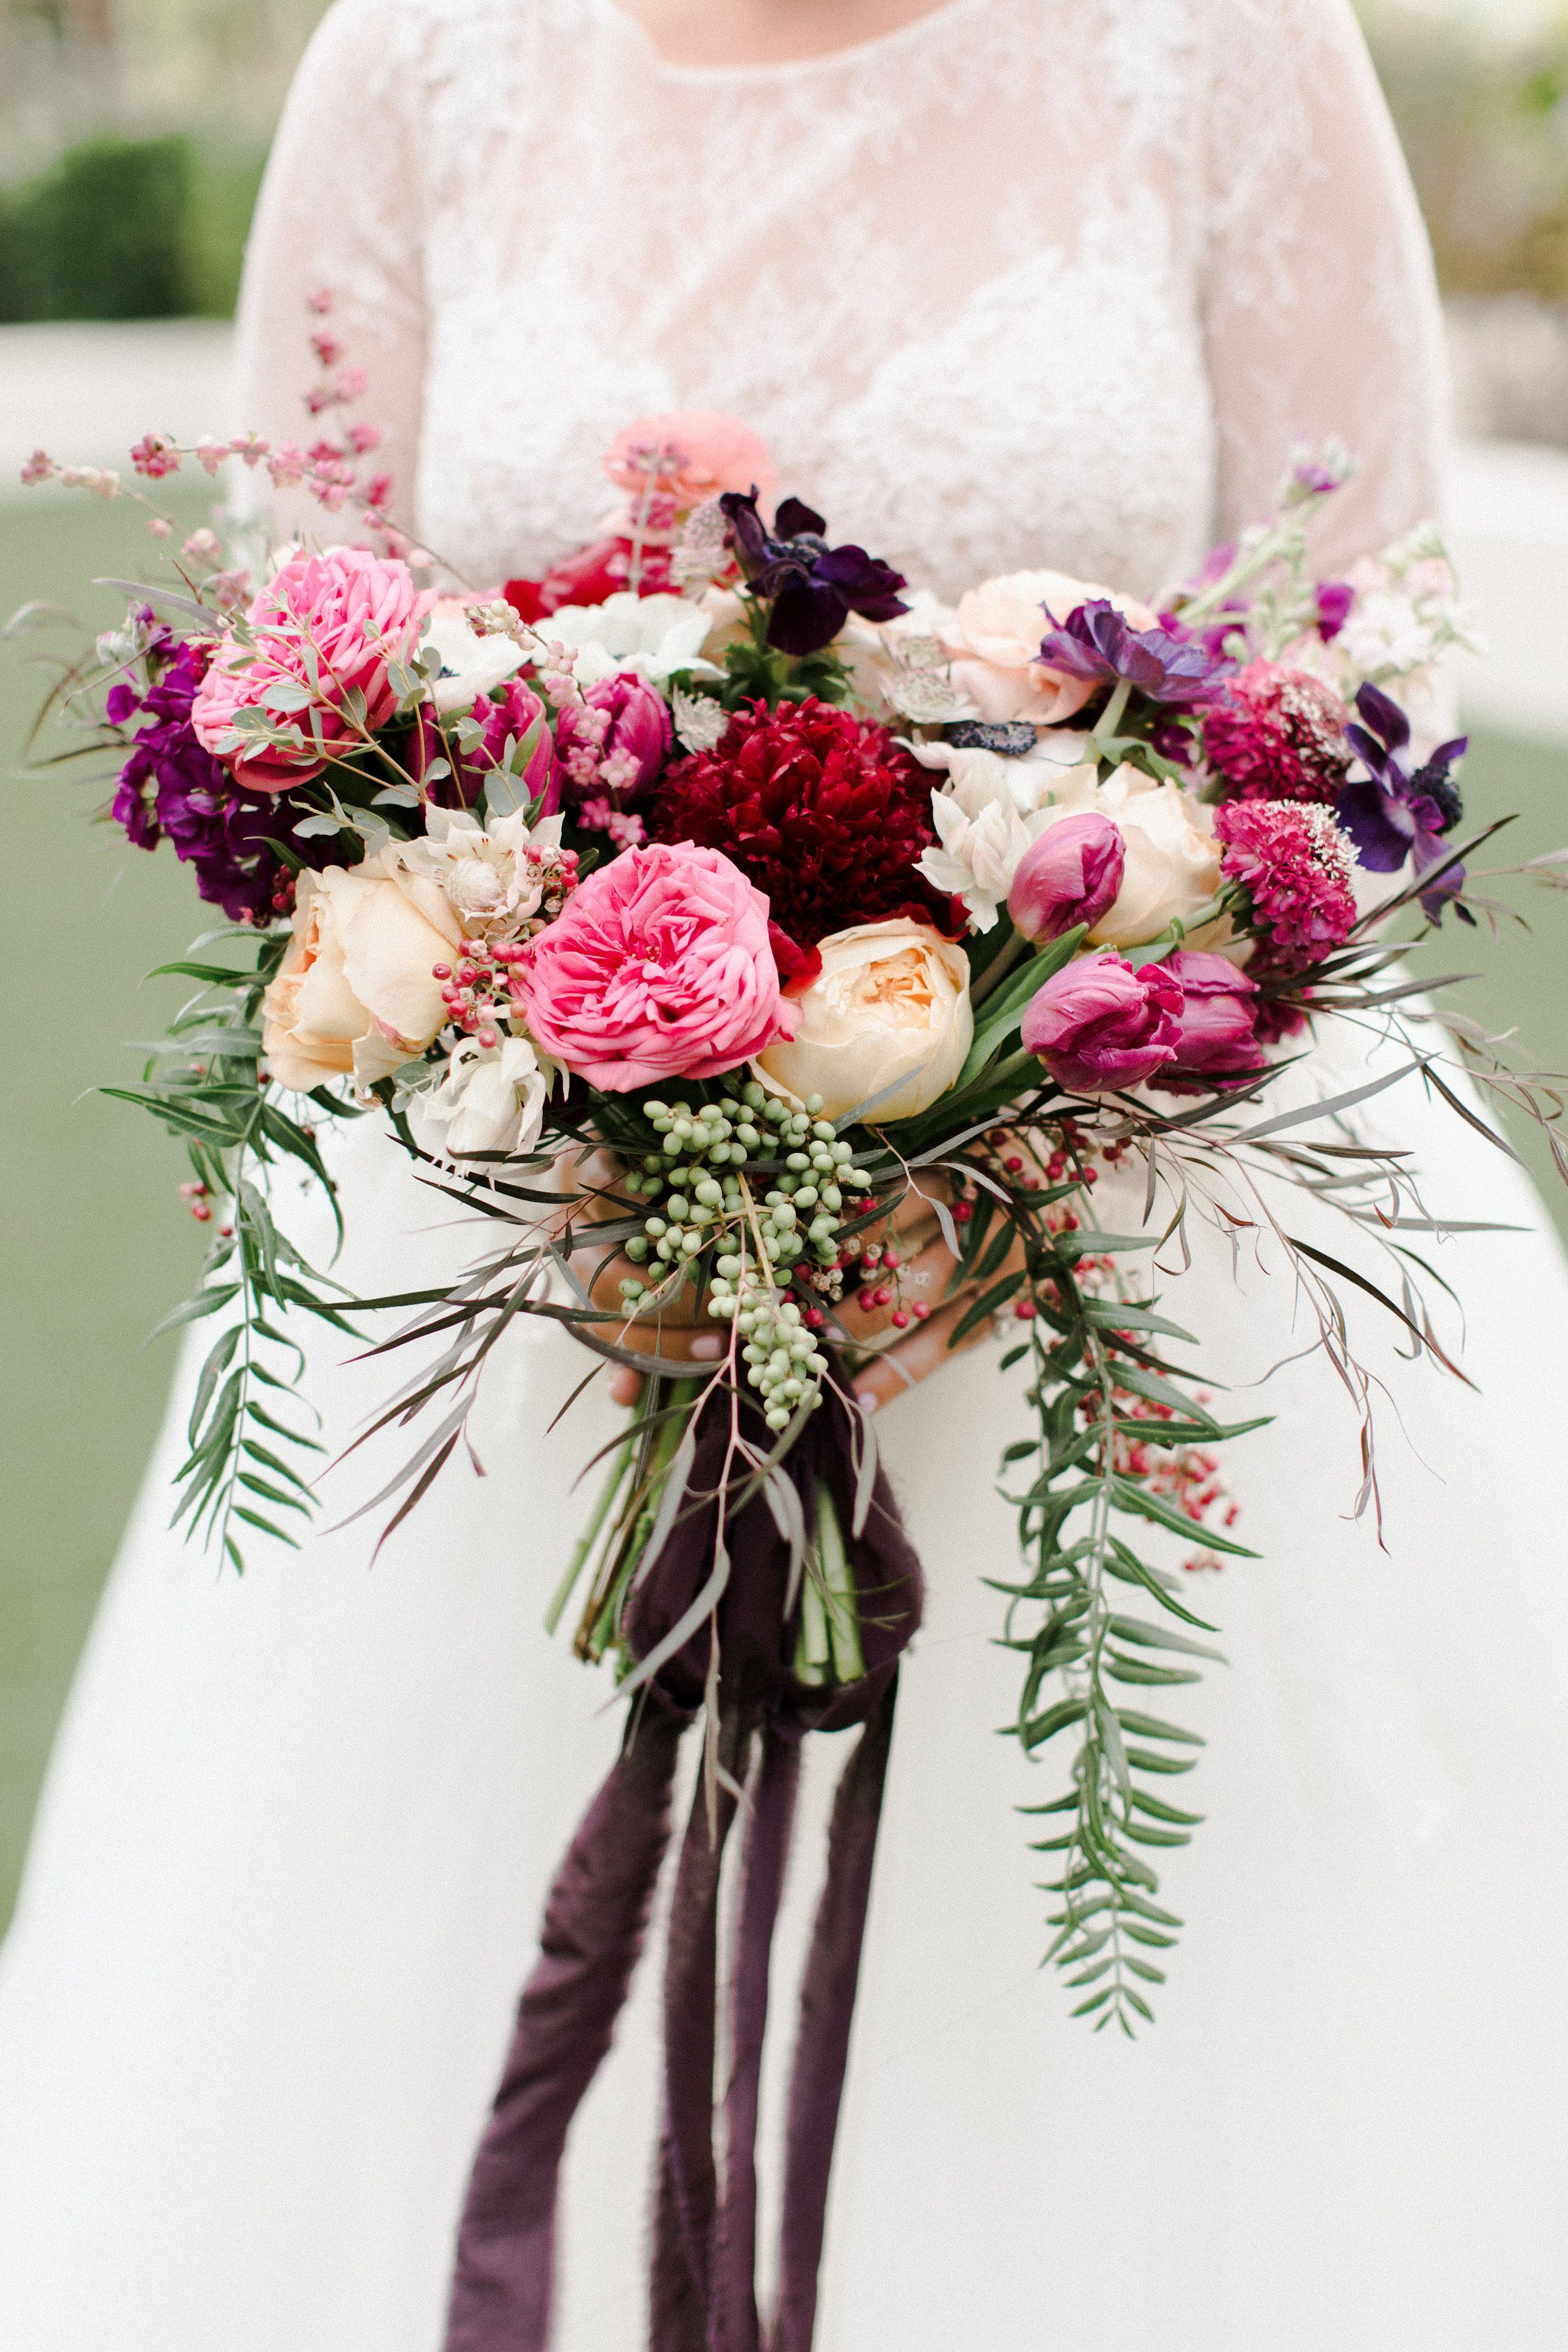 Anemones White Bridal Bouquet Blush Pink and Garden Roses Mauve and Ivory Artificial Flower and Faux Greenery Wedding Bouquets Protea